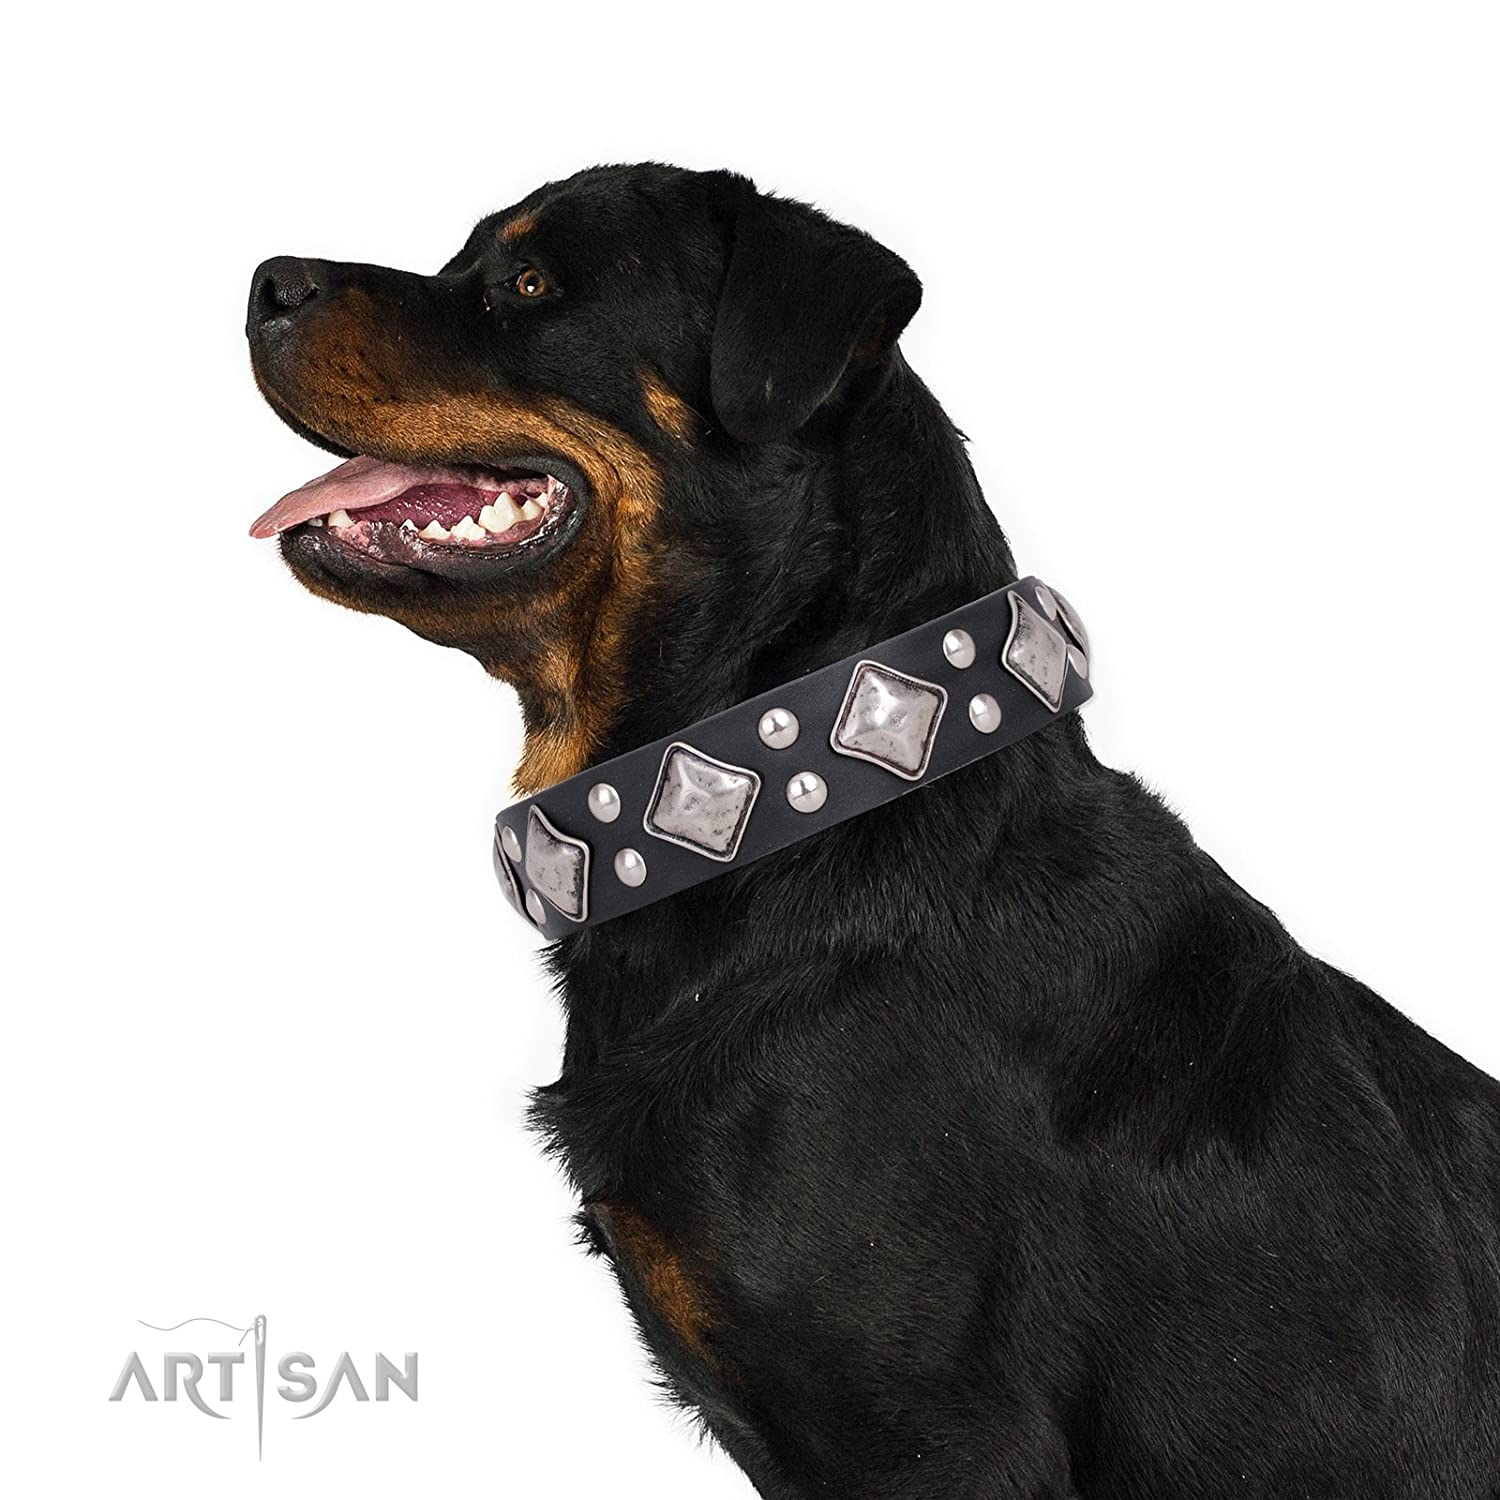 Fits for 36 inch (90cm) dog's neck size FDT Artisan 36 inch Black Leather Dog Collar with Fake Silver Decor Smart Geometry 1 1 2 inch (40 mm) Wide